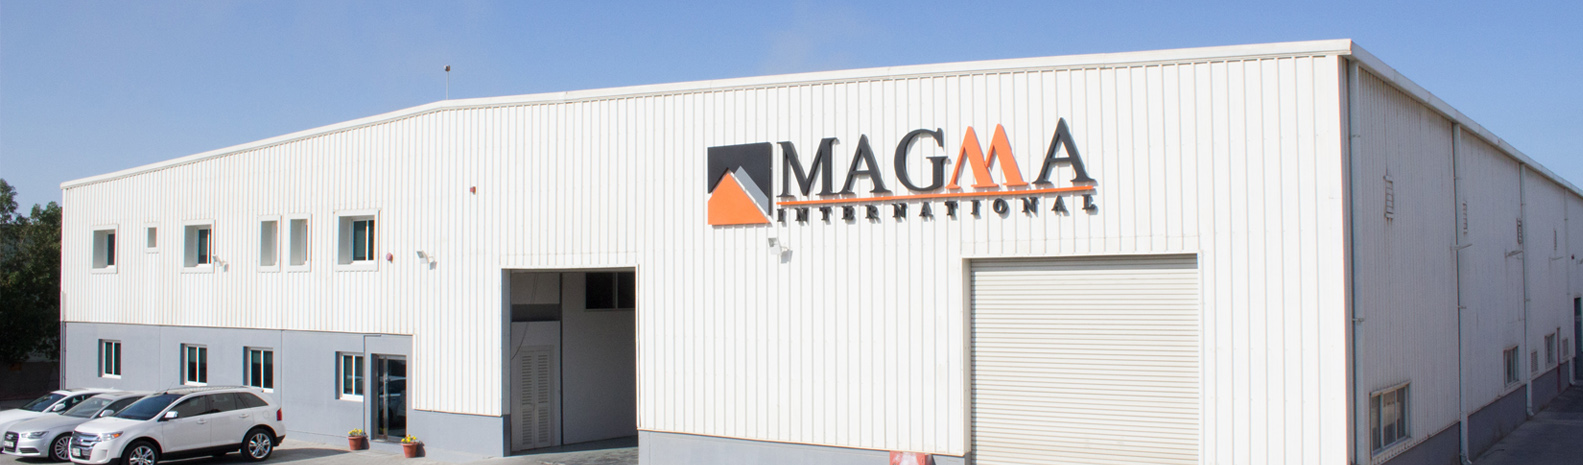 Magma International Jabel Ali